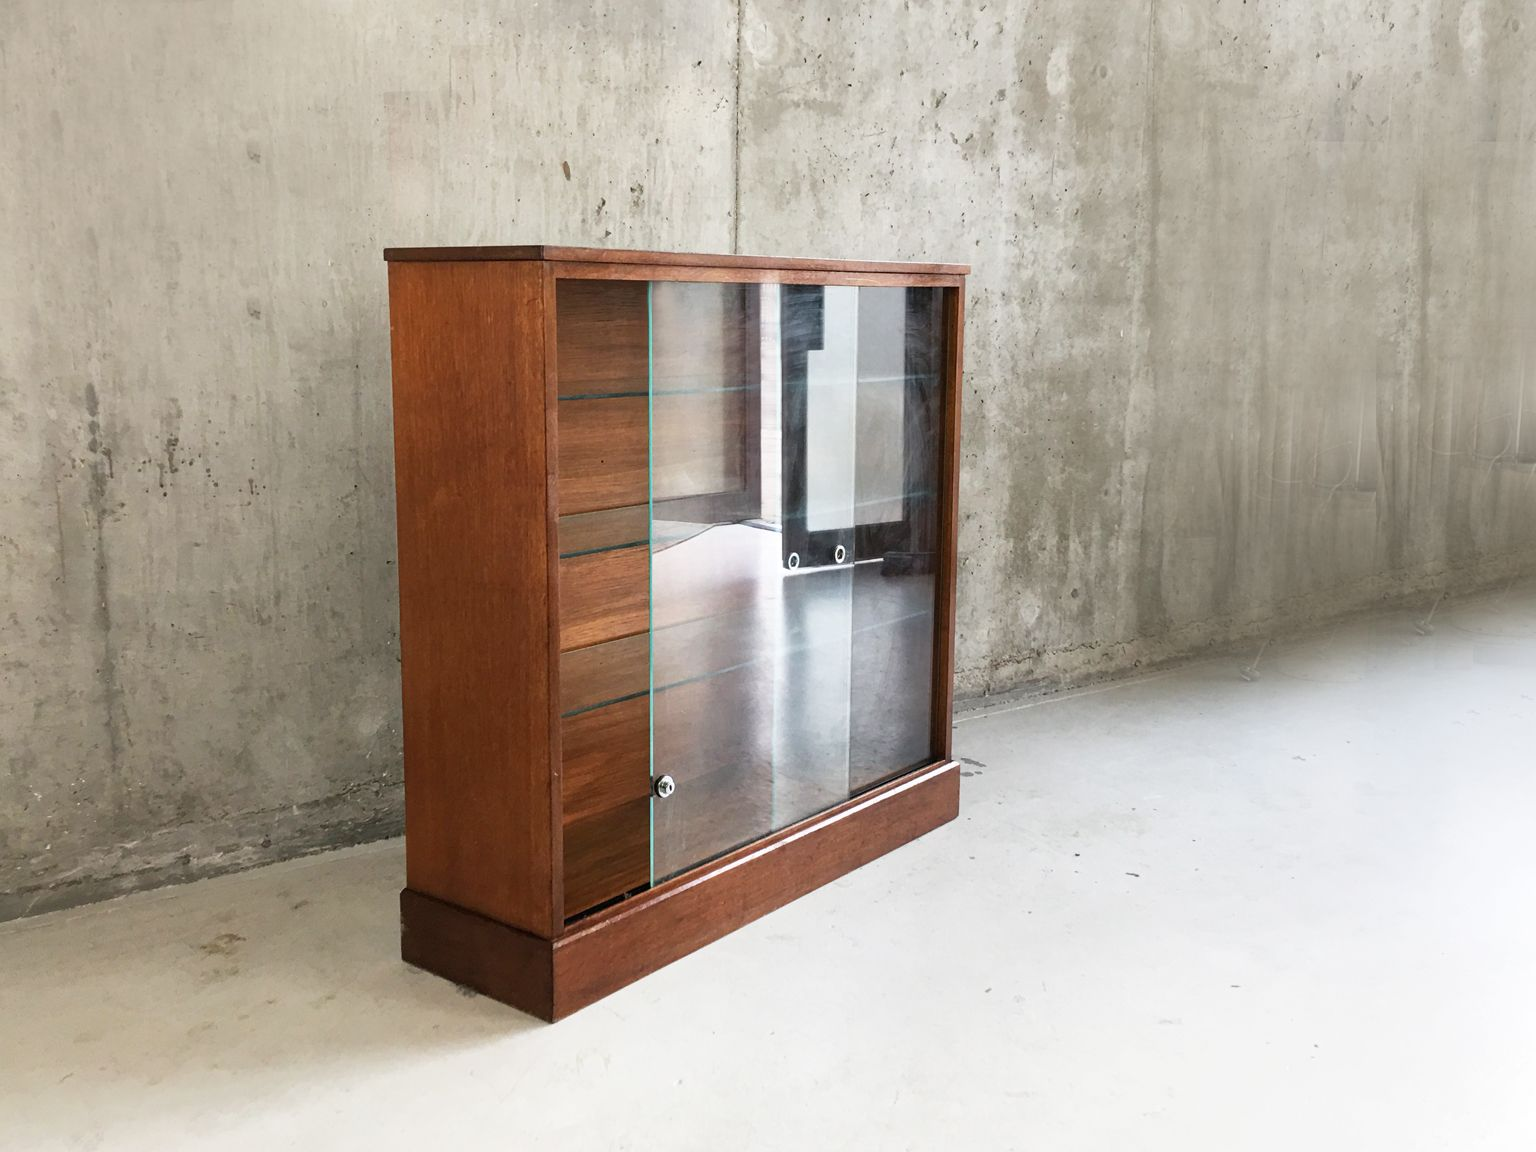 Teak bookcase with sliding glass doors 1970s for sale at for Sliding glass doors germany